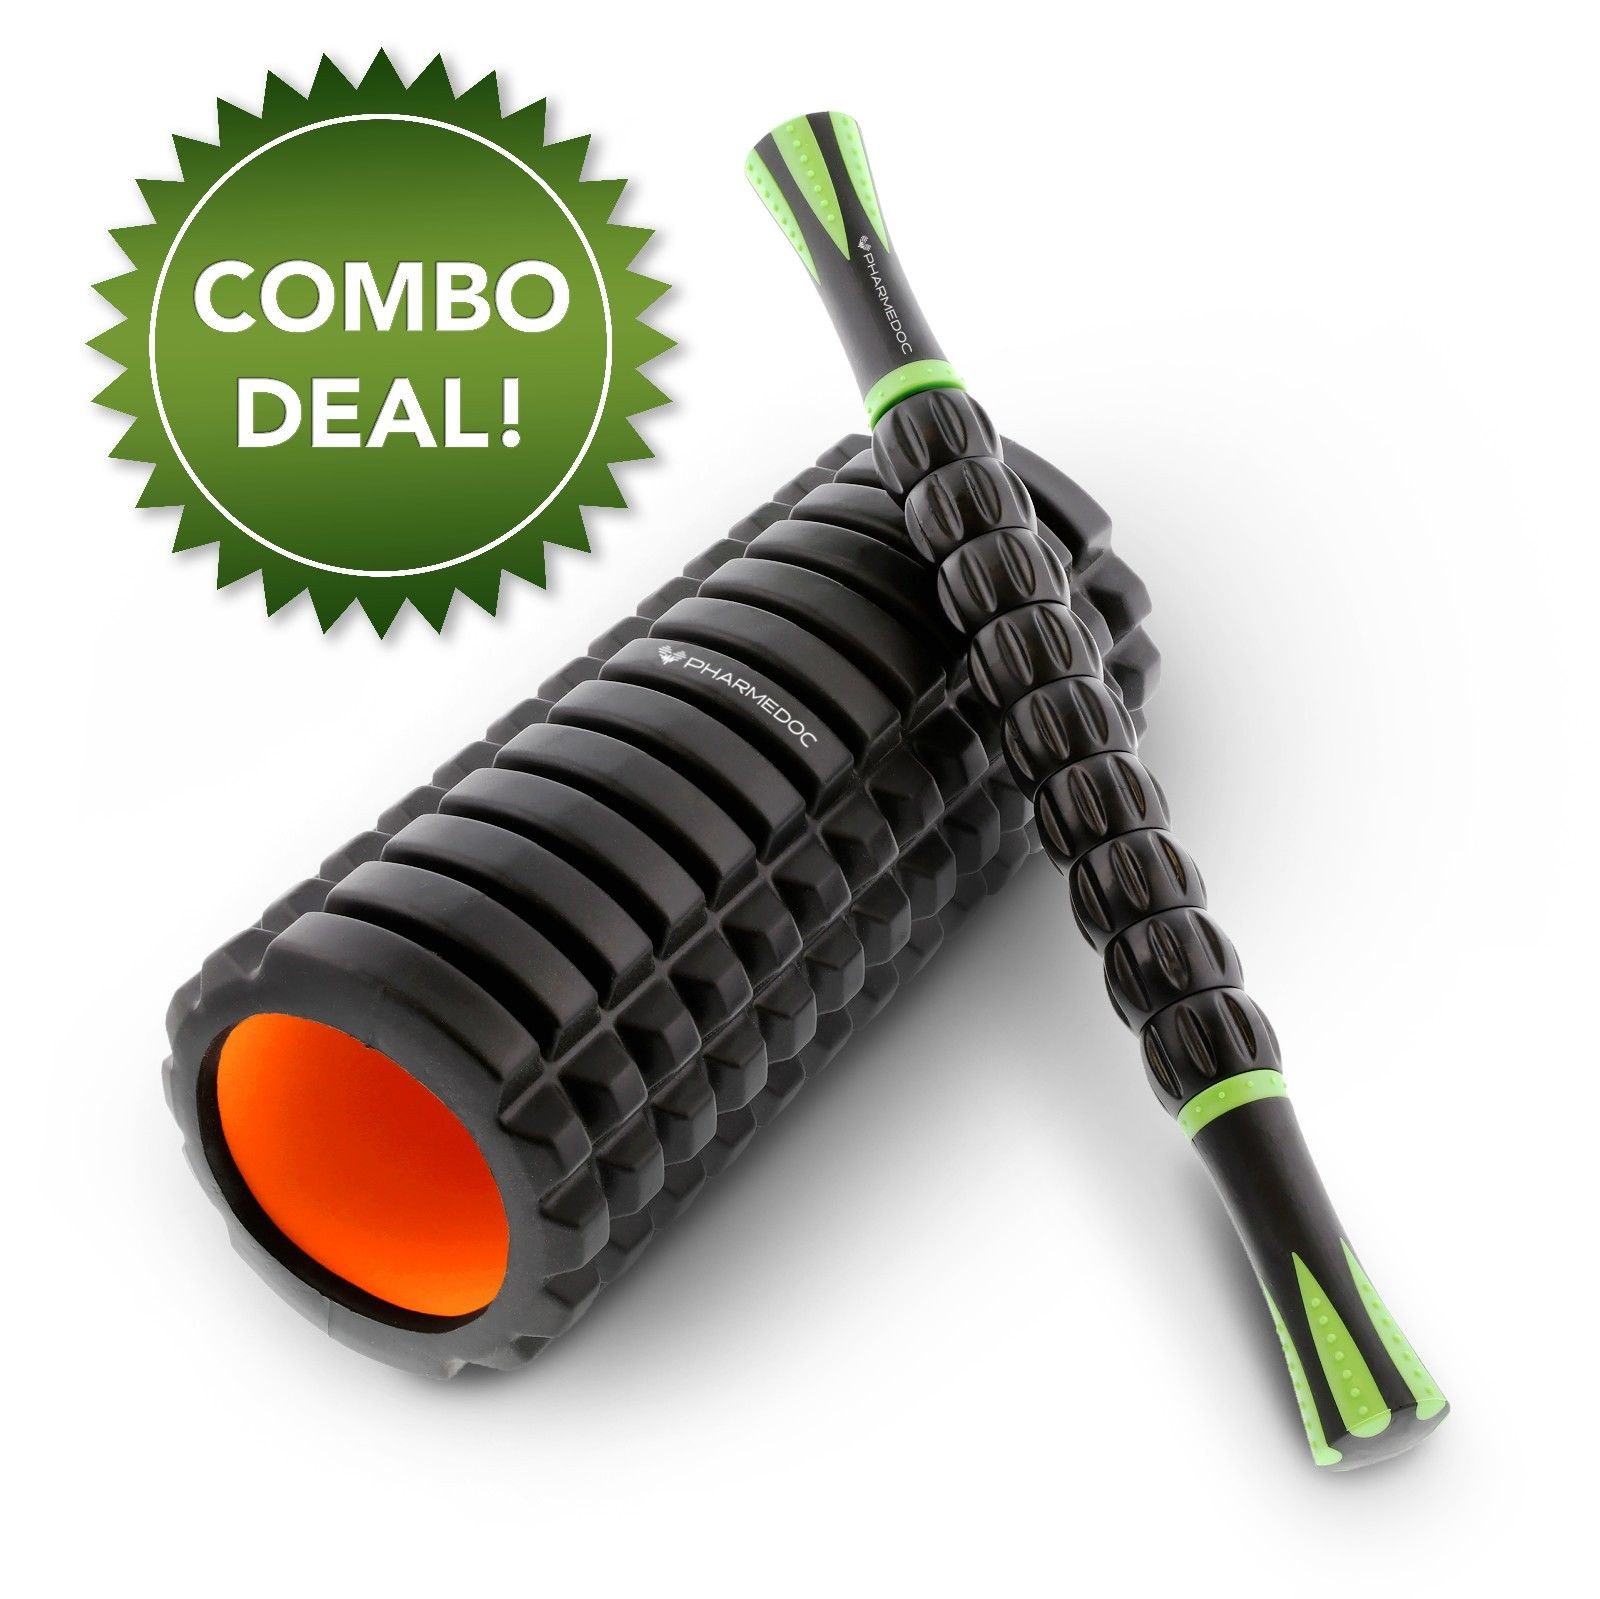 Muscle Roller COMBO BUNDLE - Foam Roller & Massage Roller Stick for Athletes, Exercise, Yoga, Physical Therapy